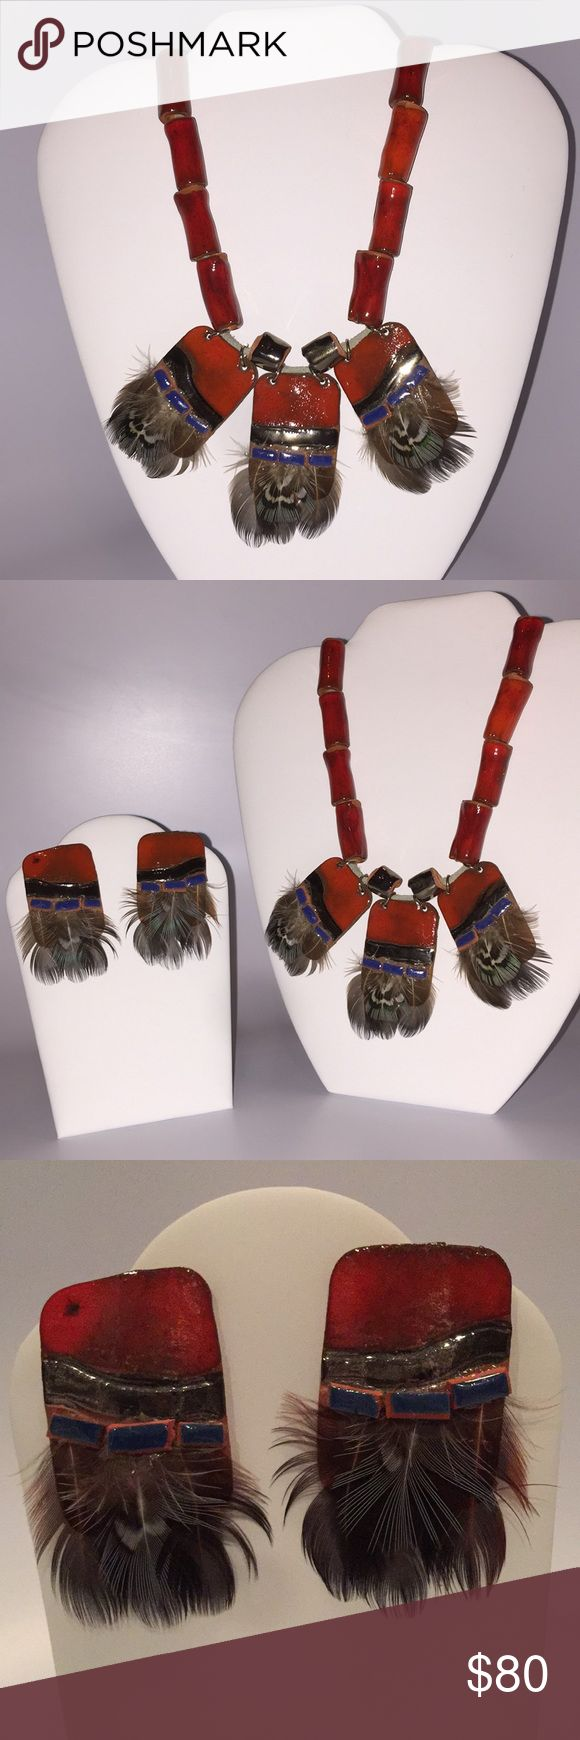 Western Porcelain Necklace and Earring Set. Beautiful can't come close when staring at this Western Porcelain with Feathers Necklace and Earring Set. The colors are reddish orange with blue as an accent color. Very beautiful for the discriminating woman. Jewelry Necklaces